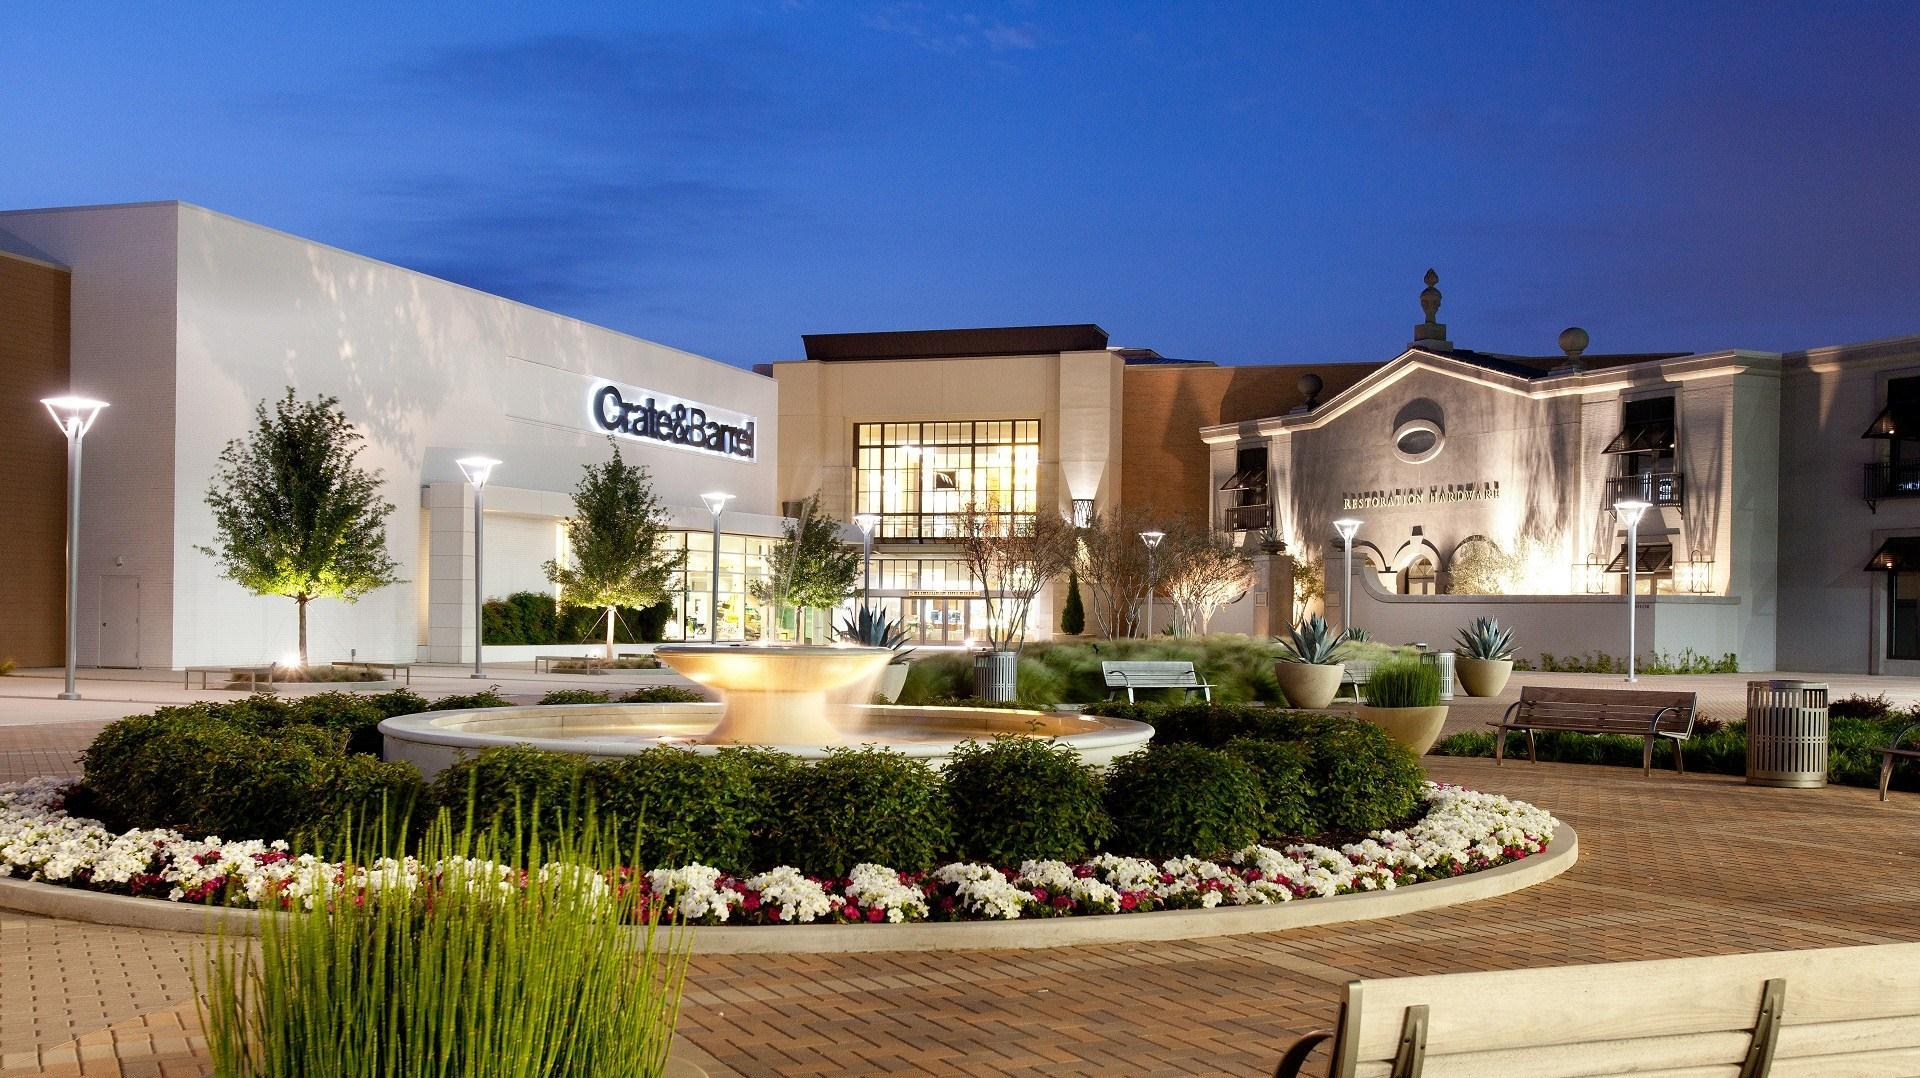 Meetings & Events at Plano Event Center Plano TX US